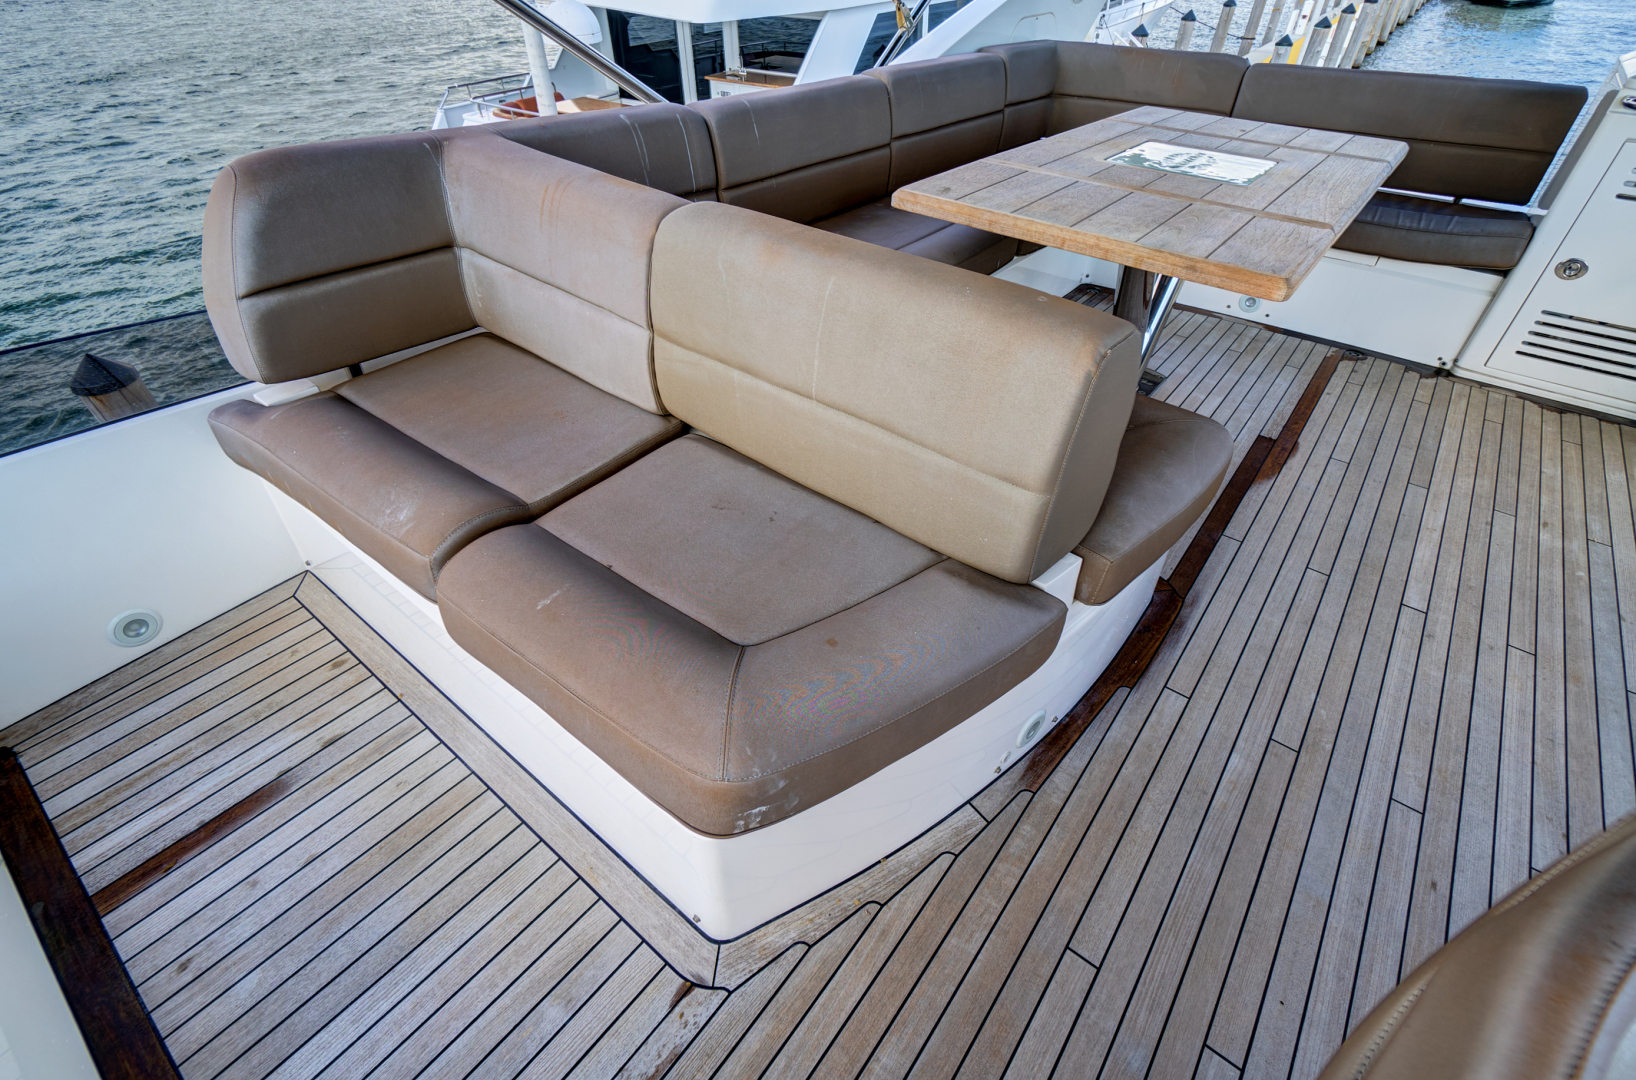 Sunseeker-68 Sport Yacht 2014-New Page Miami Beach-Florida-United States-1581187 | Thumbnail